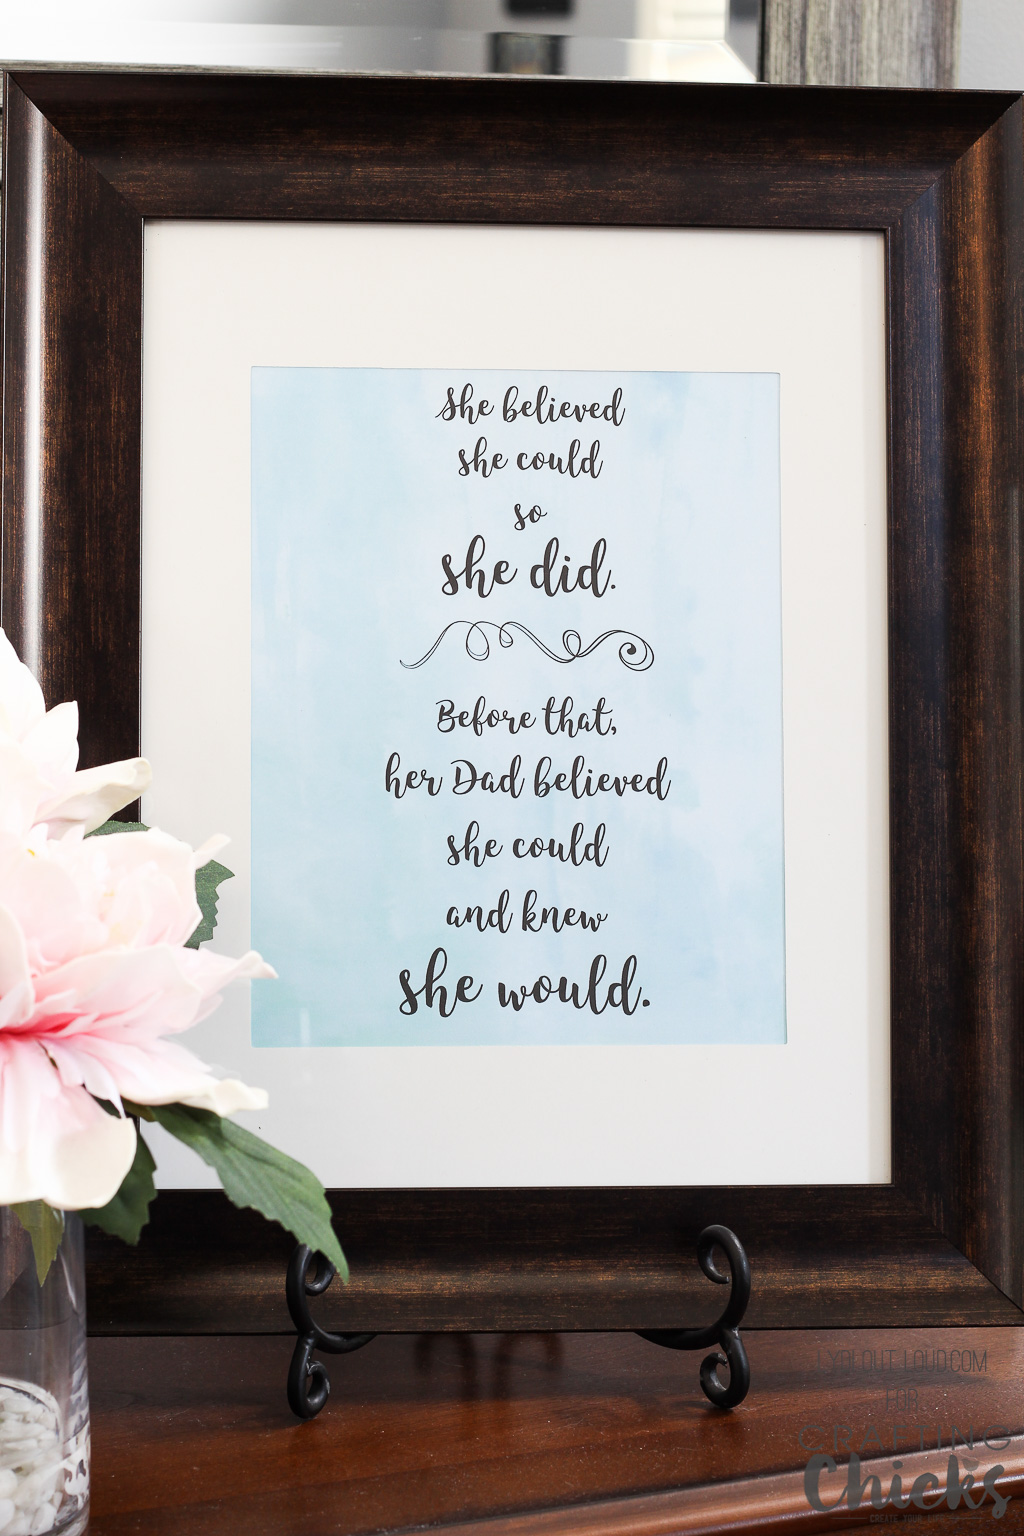 Father's Day printable art - such a heartfelt and special gift!